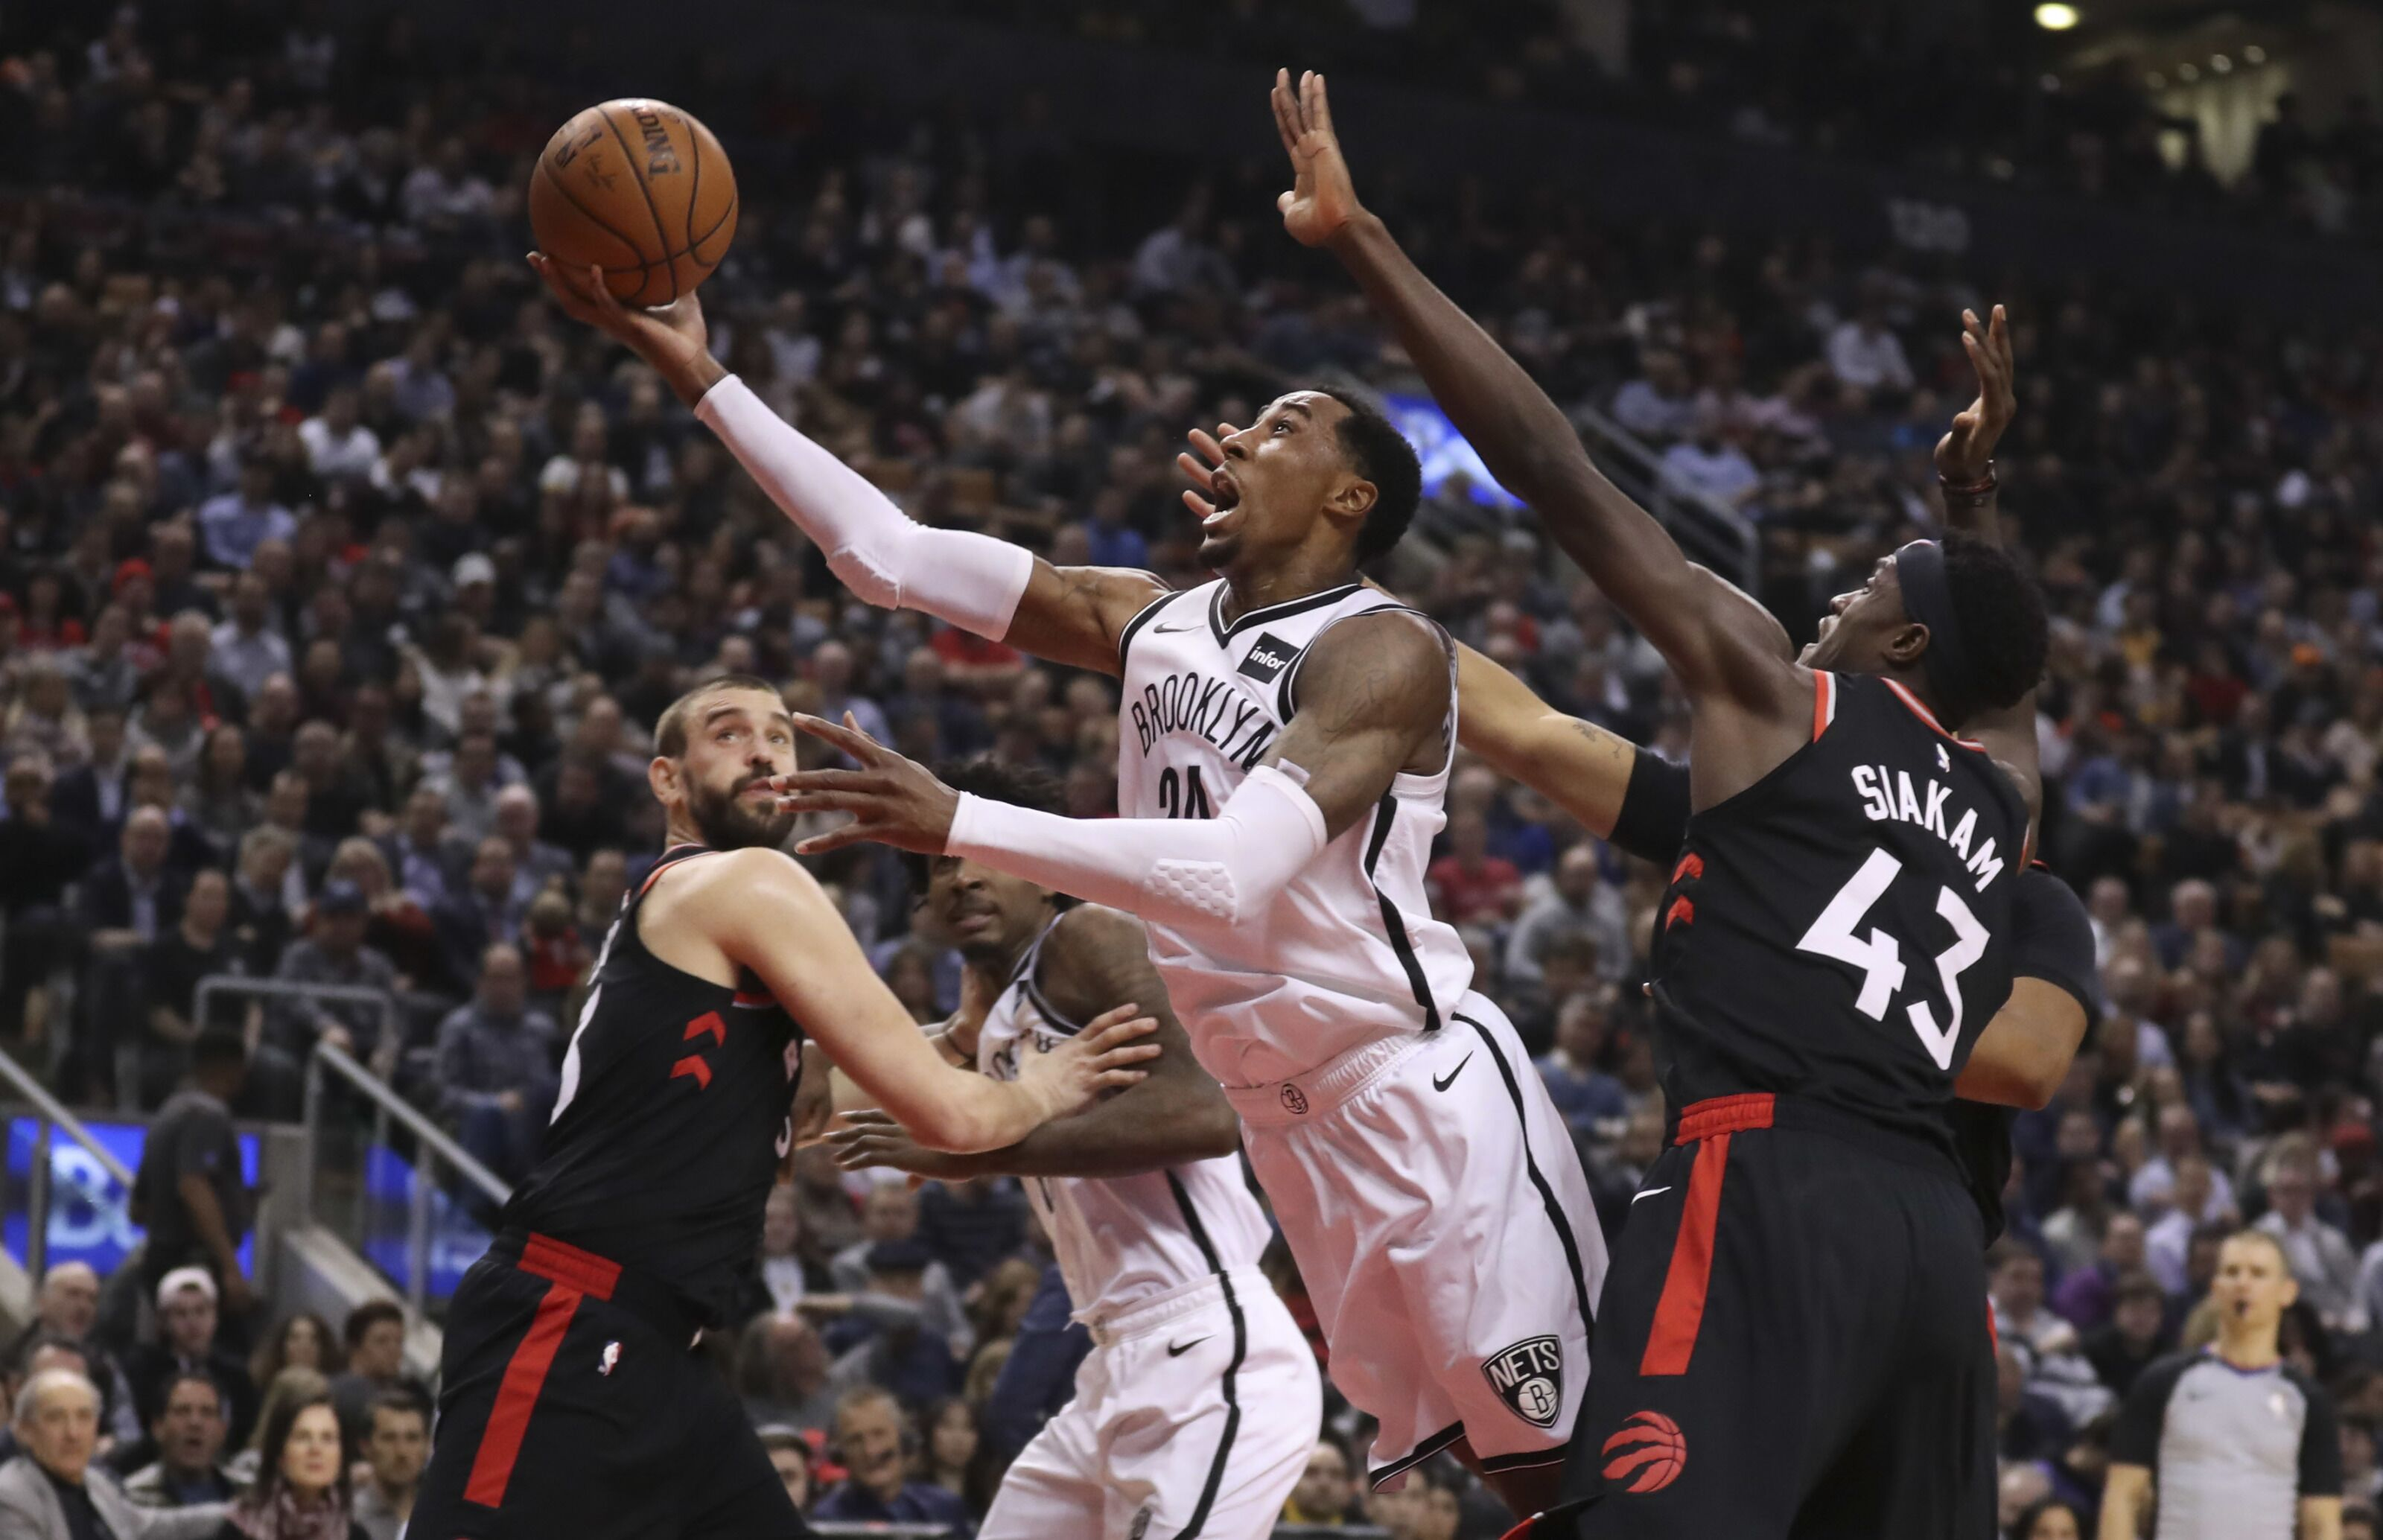 Toronto Raptors: What are the odds Rondae Hollis-Jefferson becomes a capable shooter?